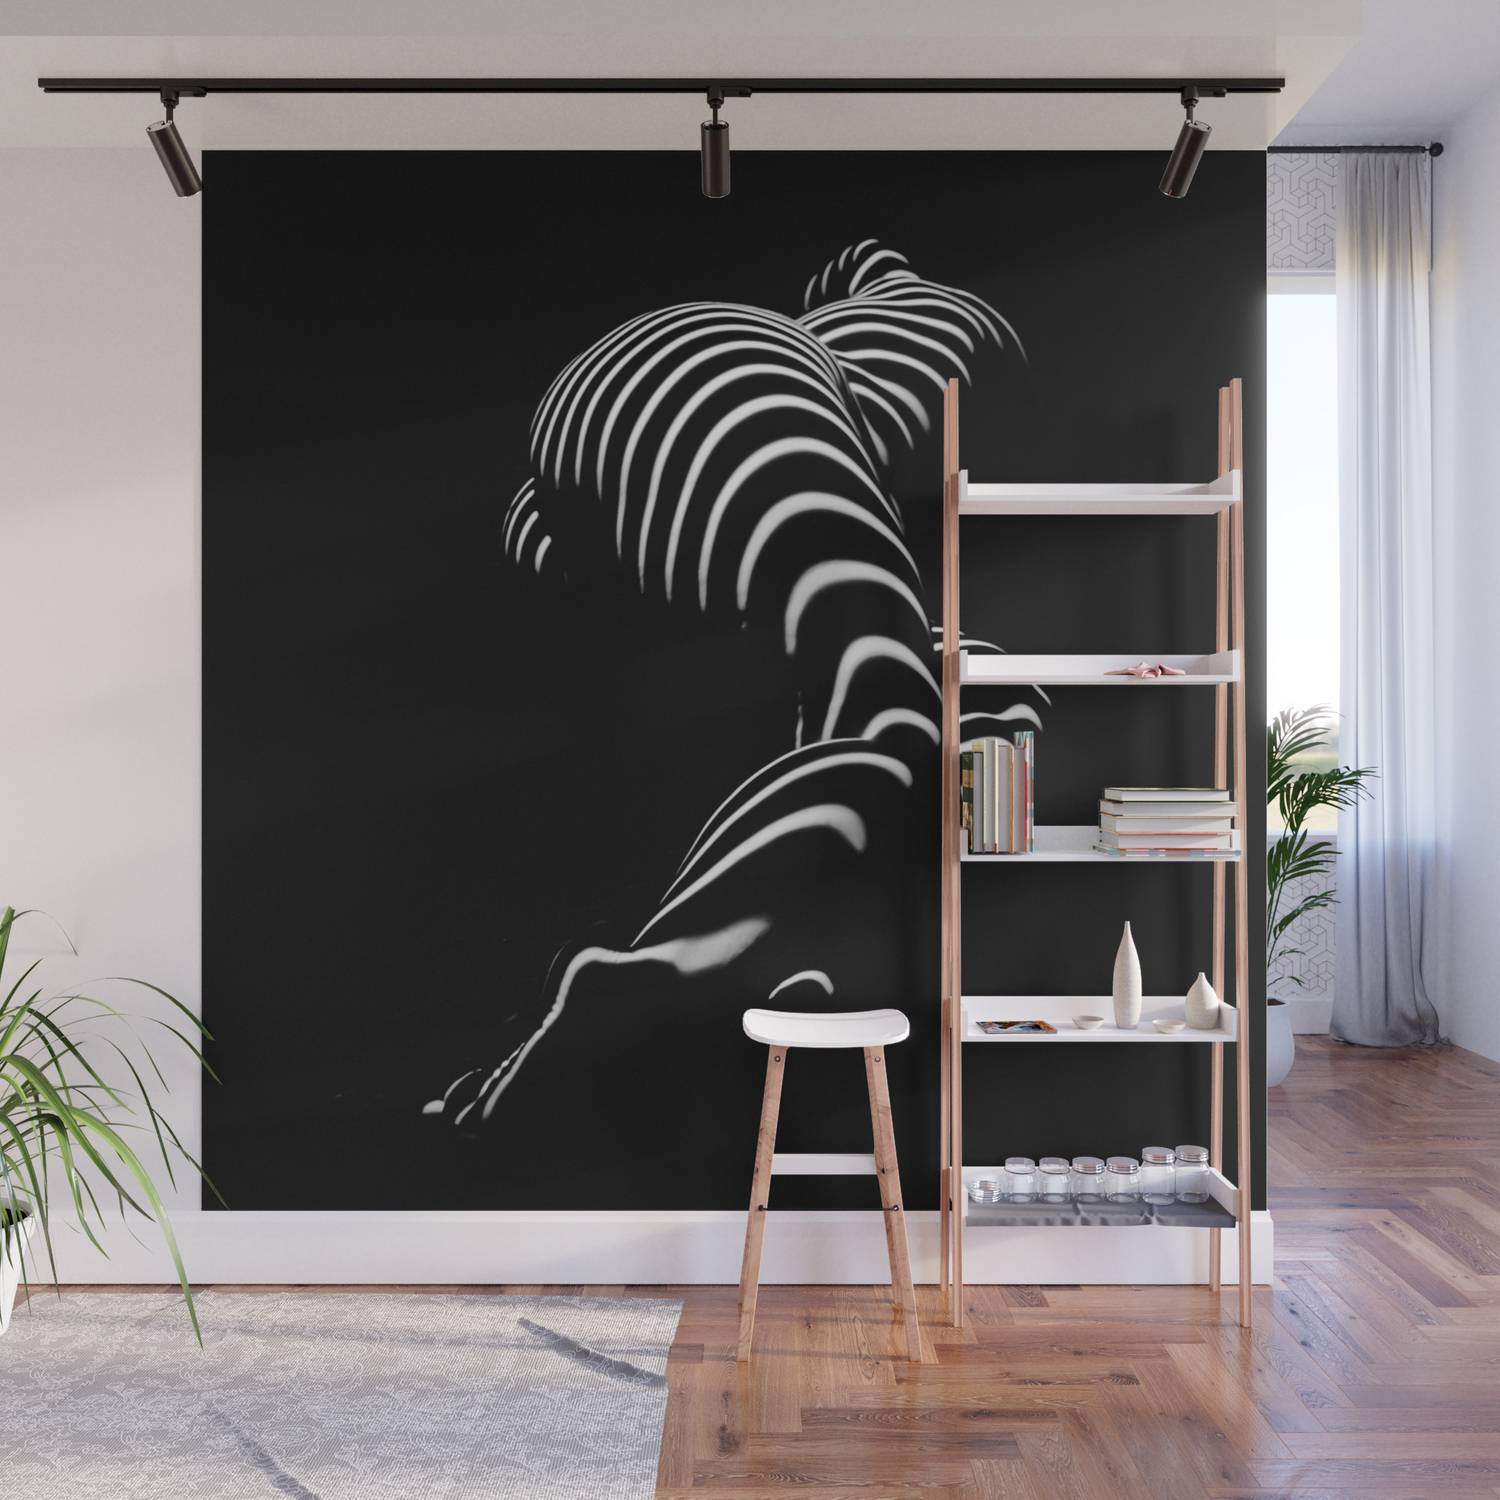 Bbw Tube Ass 0774-ar bbw sensual legs hips and ass of a large woman big beautiful art nude black and white wall mural